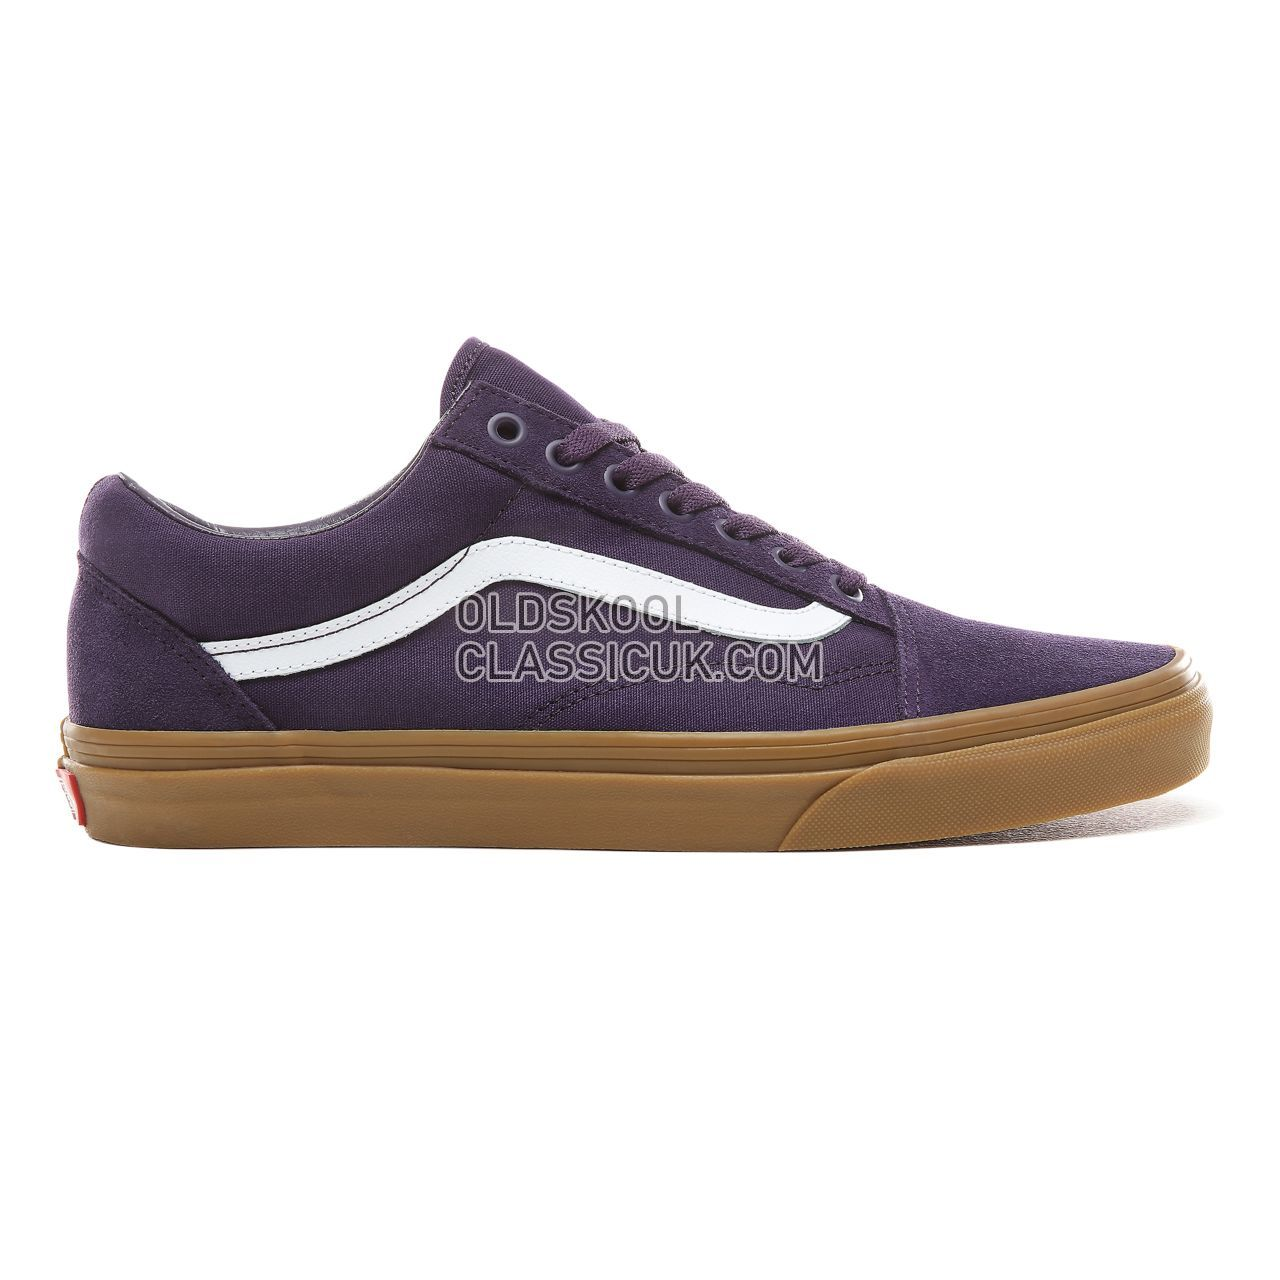 3898eb3047 Reduced price  New. Vans Old Skool Sneakers Mens Womens Unisex  Mysterioso Gum VN0A38G1VKT Shoes ...